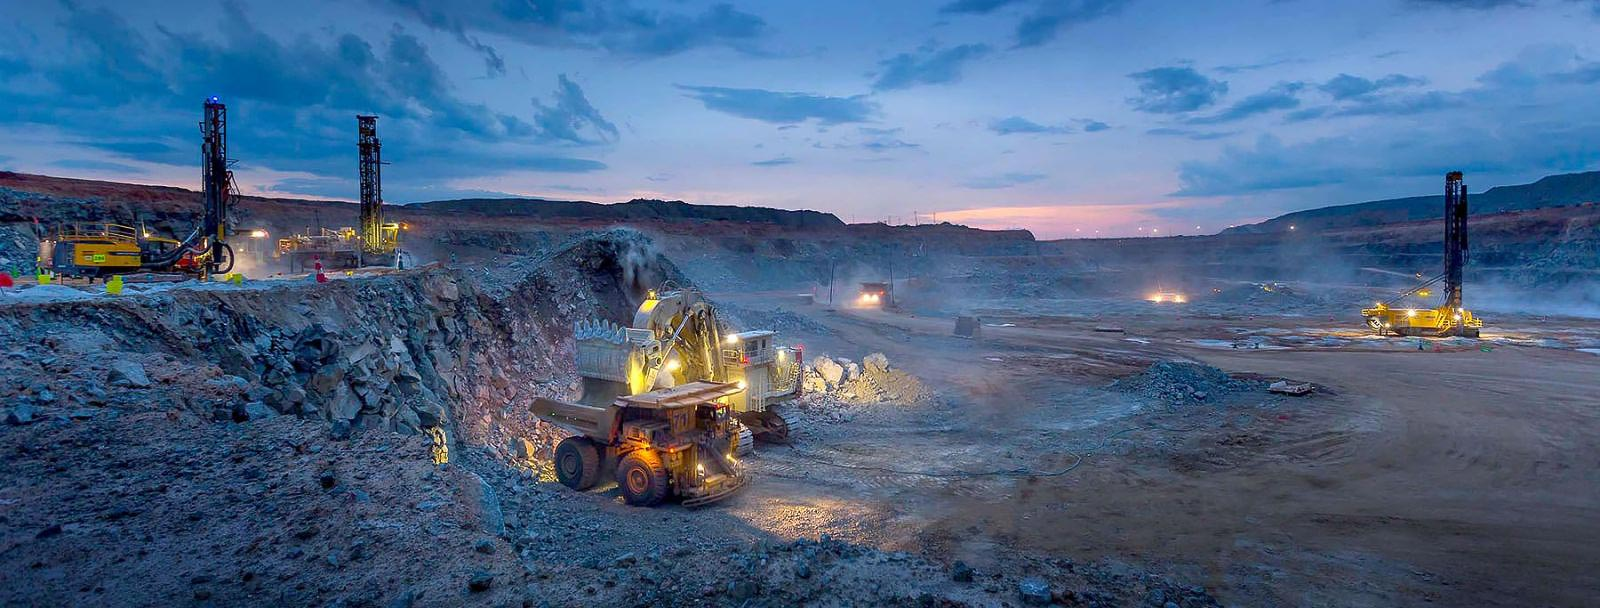 Drilling load and haul operations at open pit mine at sunset